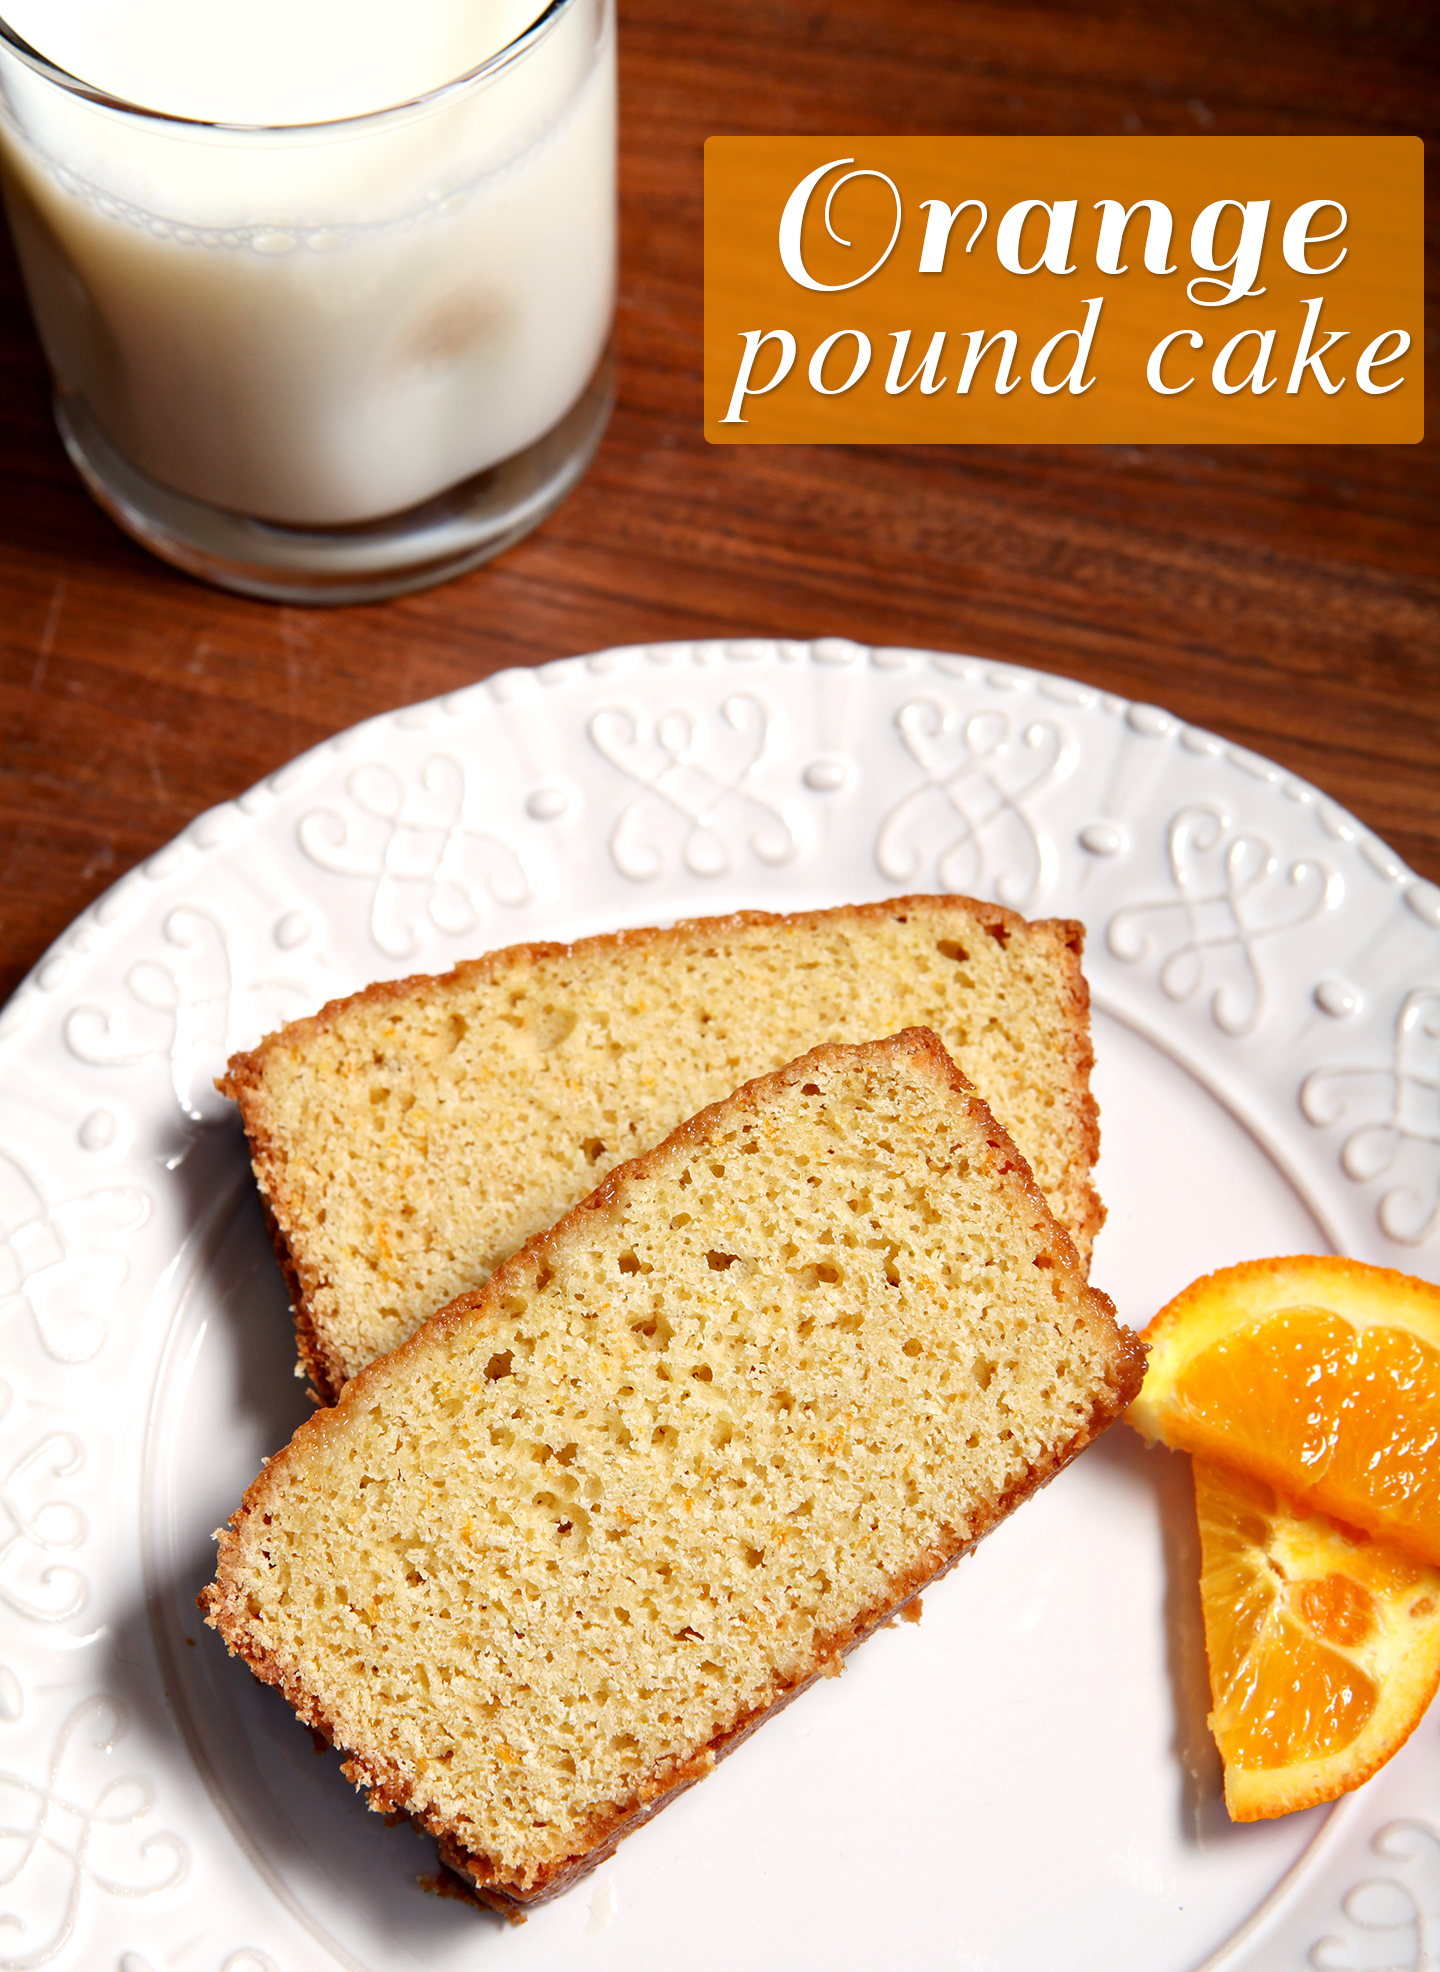 Orange Pound Cake | Bake your mama up a sweet surprise to start her Mother's Day with this Orange Pound Cake. Simple, delicious, slightly sweet and perfect with her morning coffee, your mom will adore this baked good! | @speckledpalate for @mycookingspot